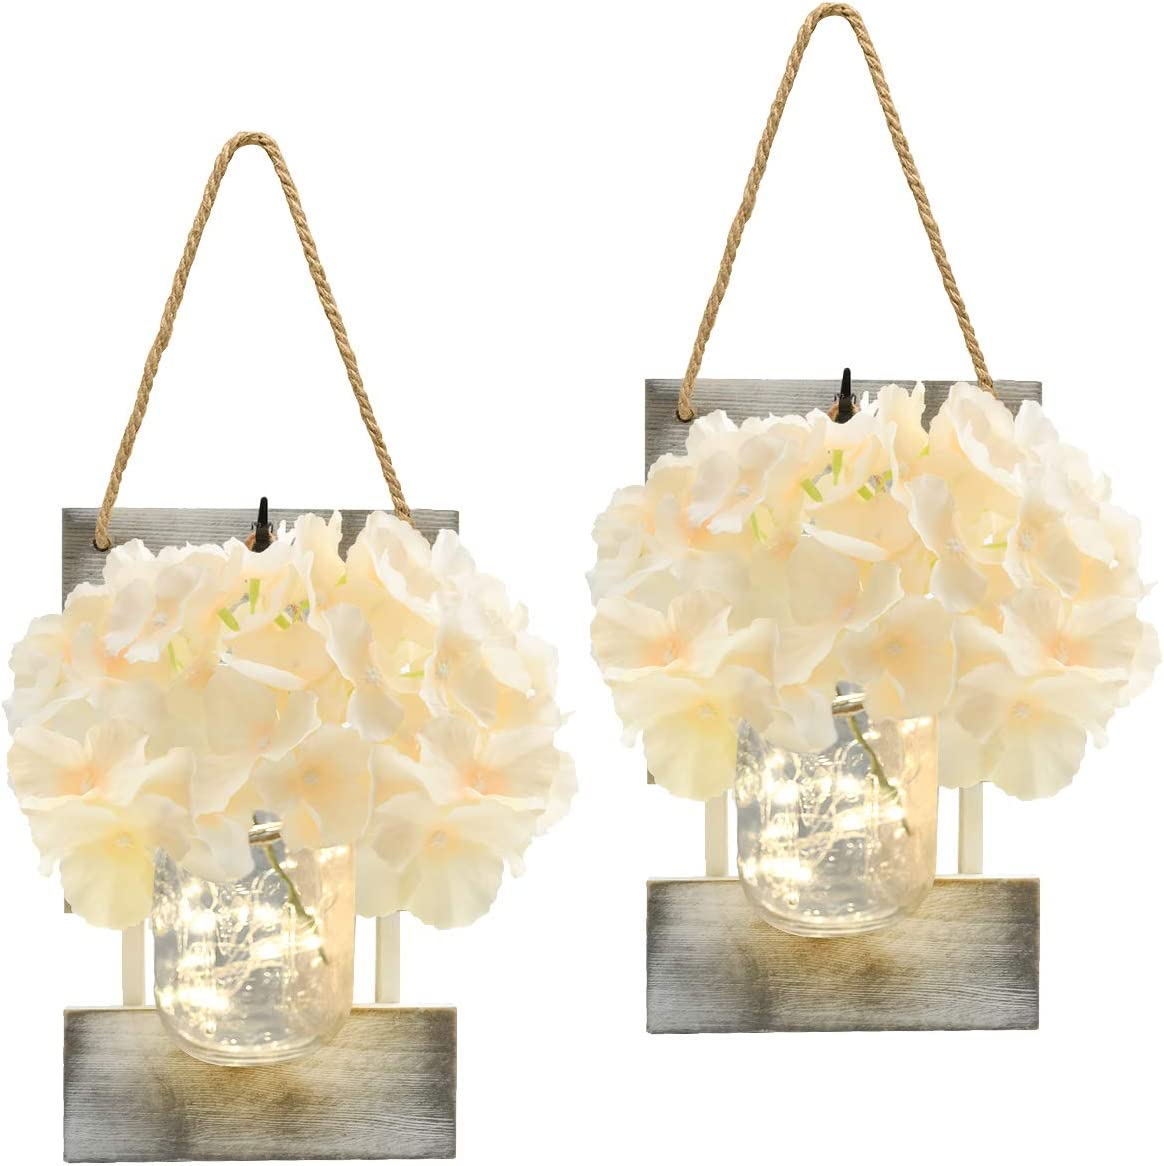 Yooda Mason Jar Sconces for Home Decor, Rustic Wall Sconces with LED Fairy Lights and Silk Hydrangea Flowers, 6-Hour Timer, Farmhouse Home Wall Decoration (Set of 2)